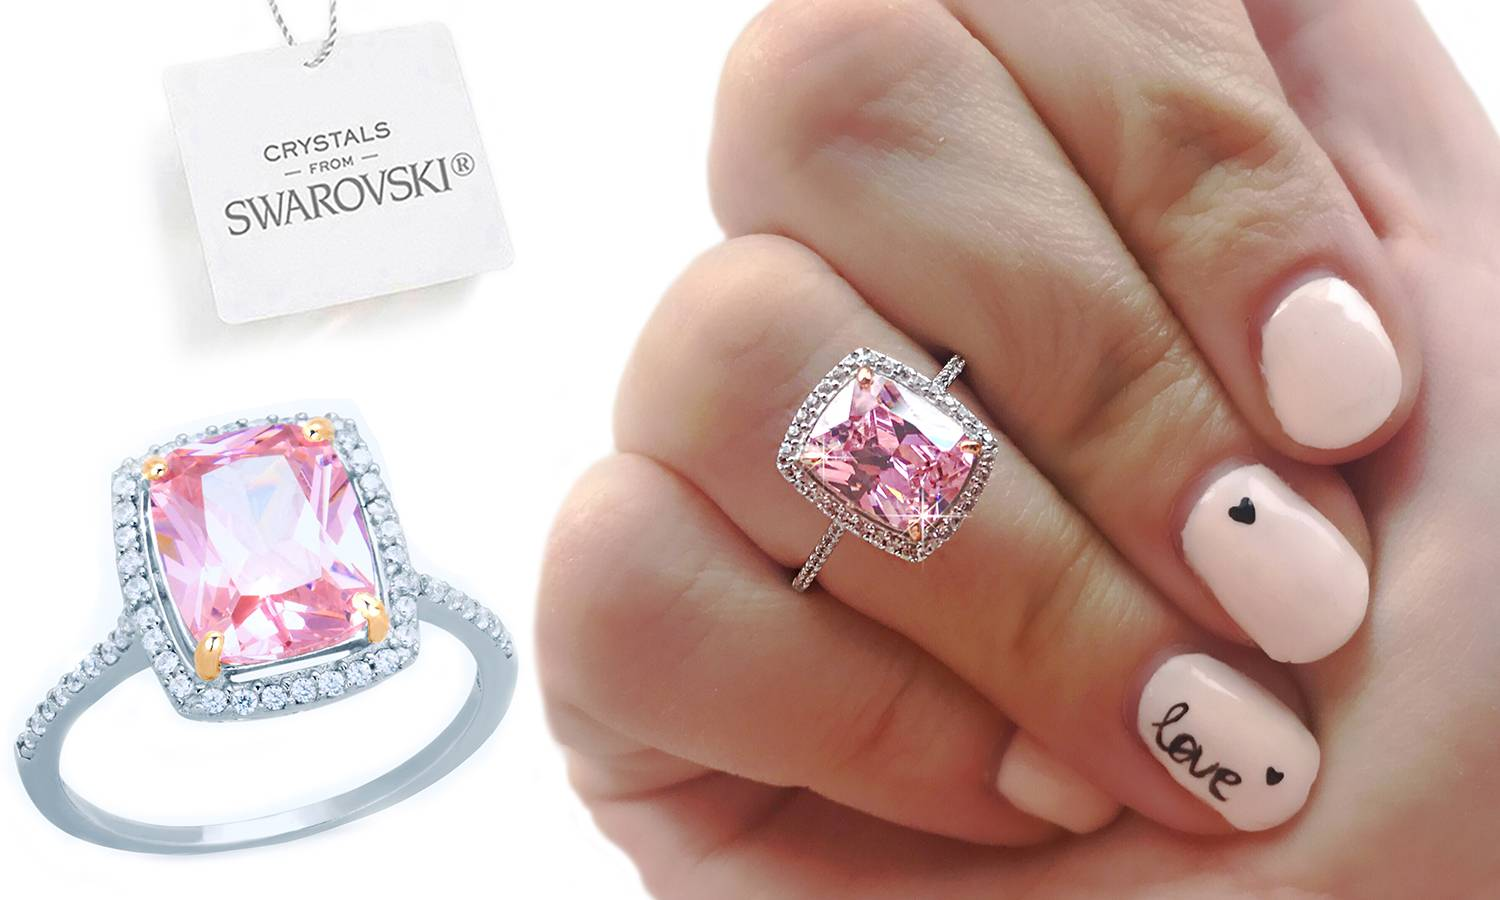 249.00 Ah! Jewellery Sterling Silver Ring with Crystals from Swarovski®: J-K